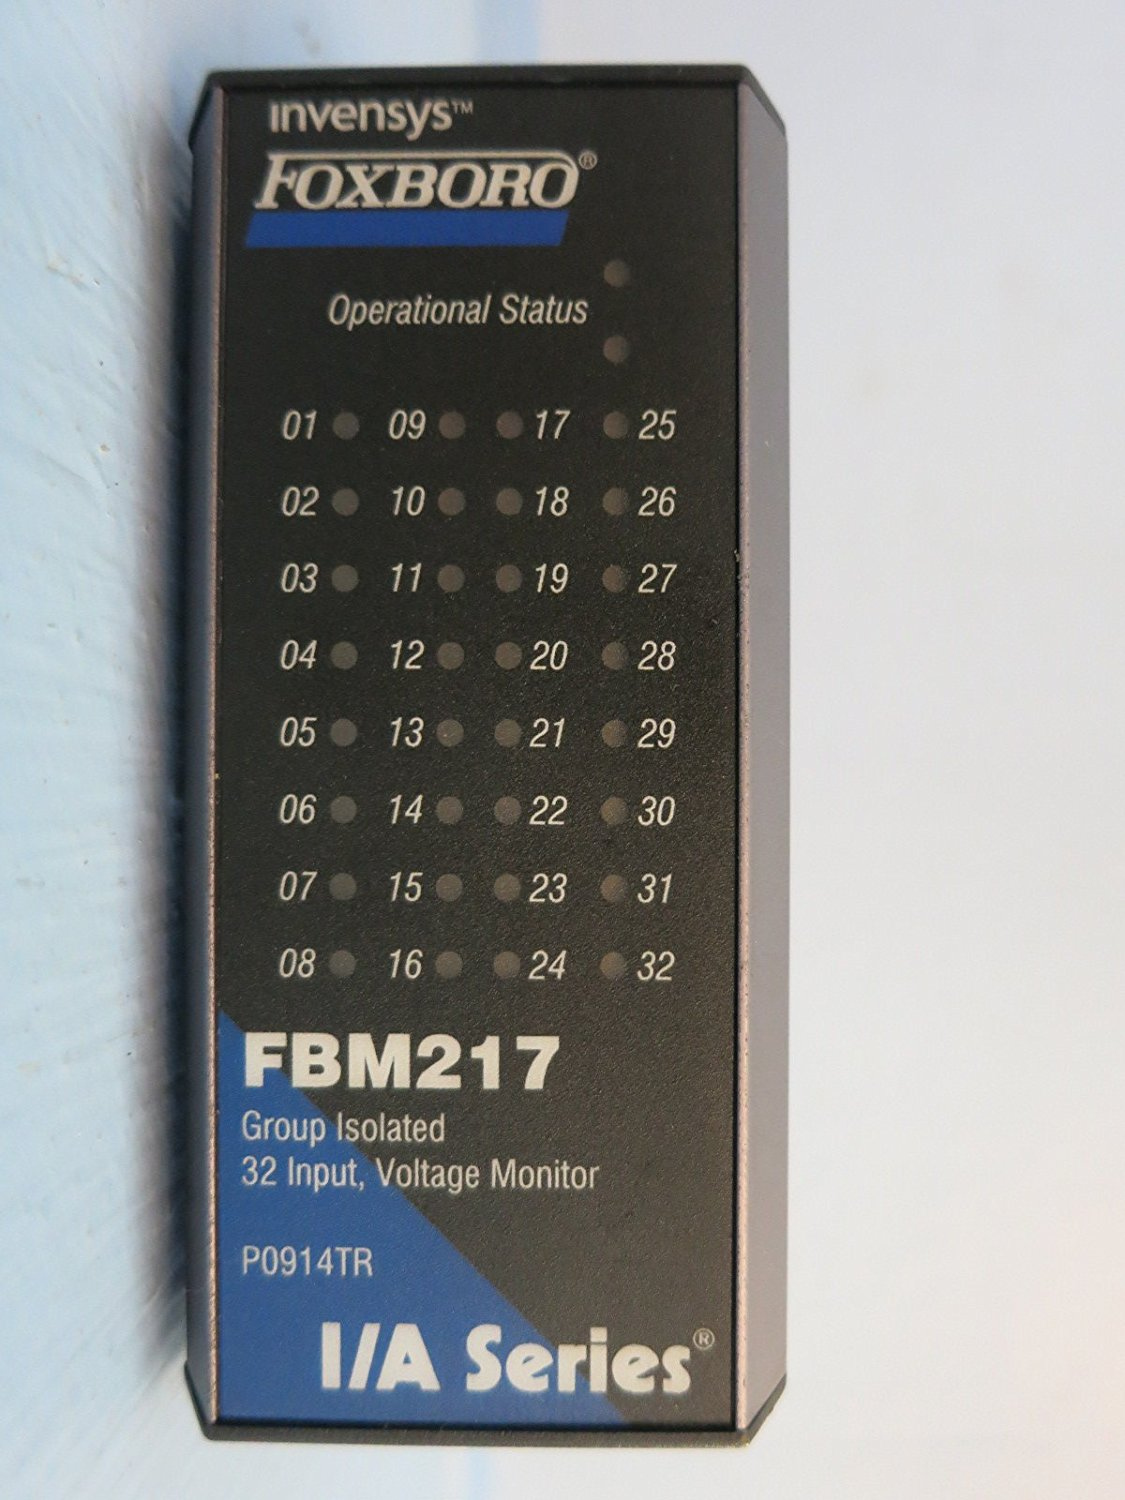 FOXBORO  FBM237 Channel Isolated 8 Output I/A Series PLC P0914XS